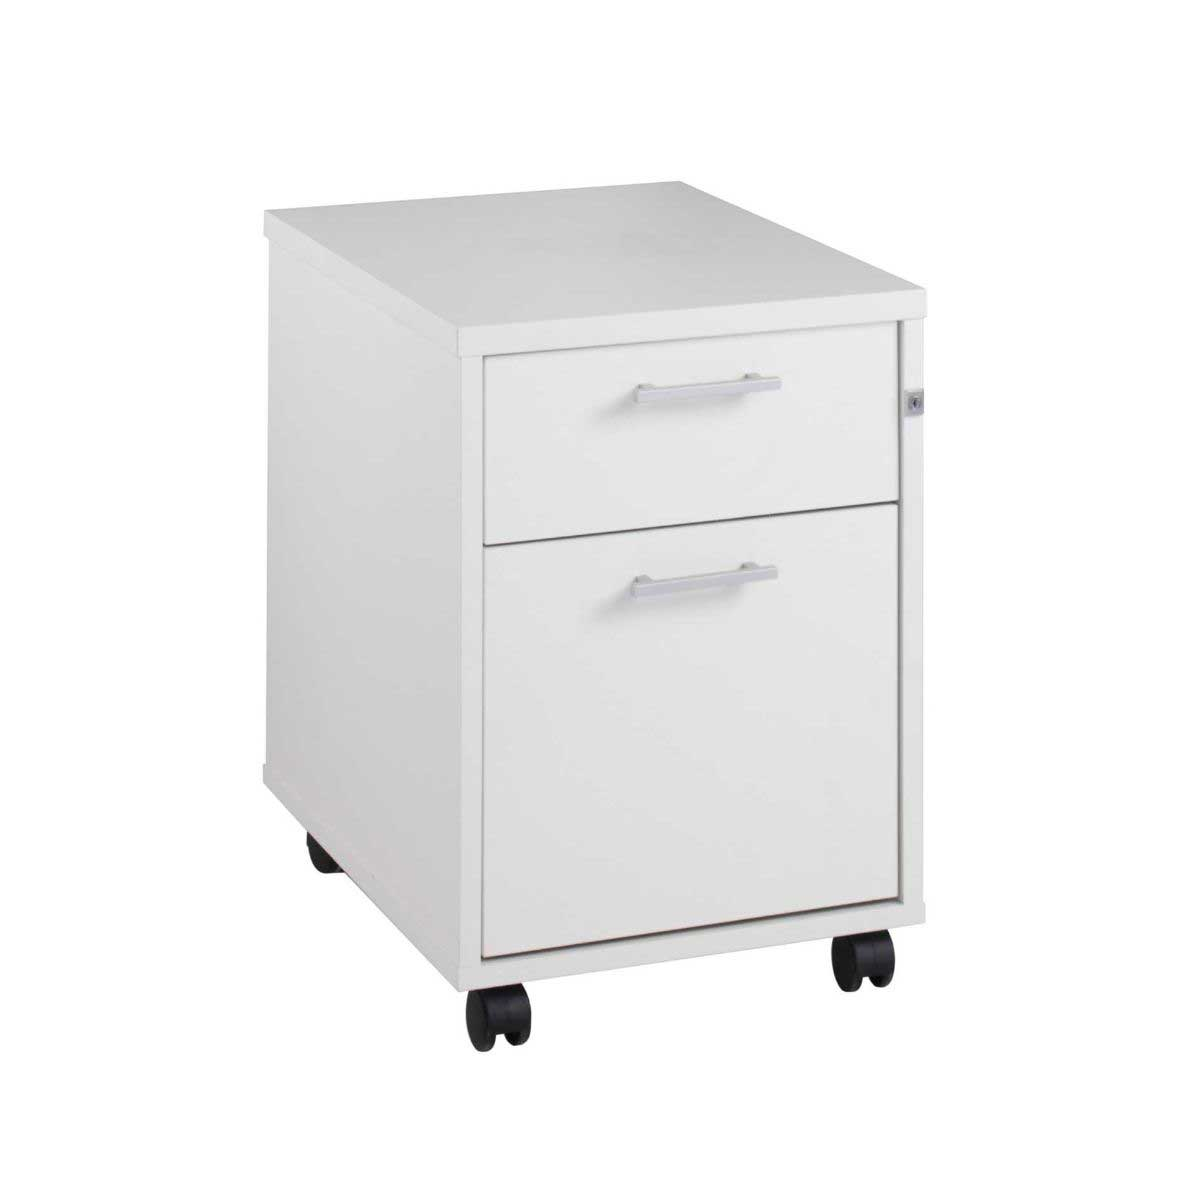 Image of 2 Drawer Mobile Pedestal, White